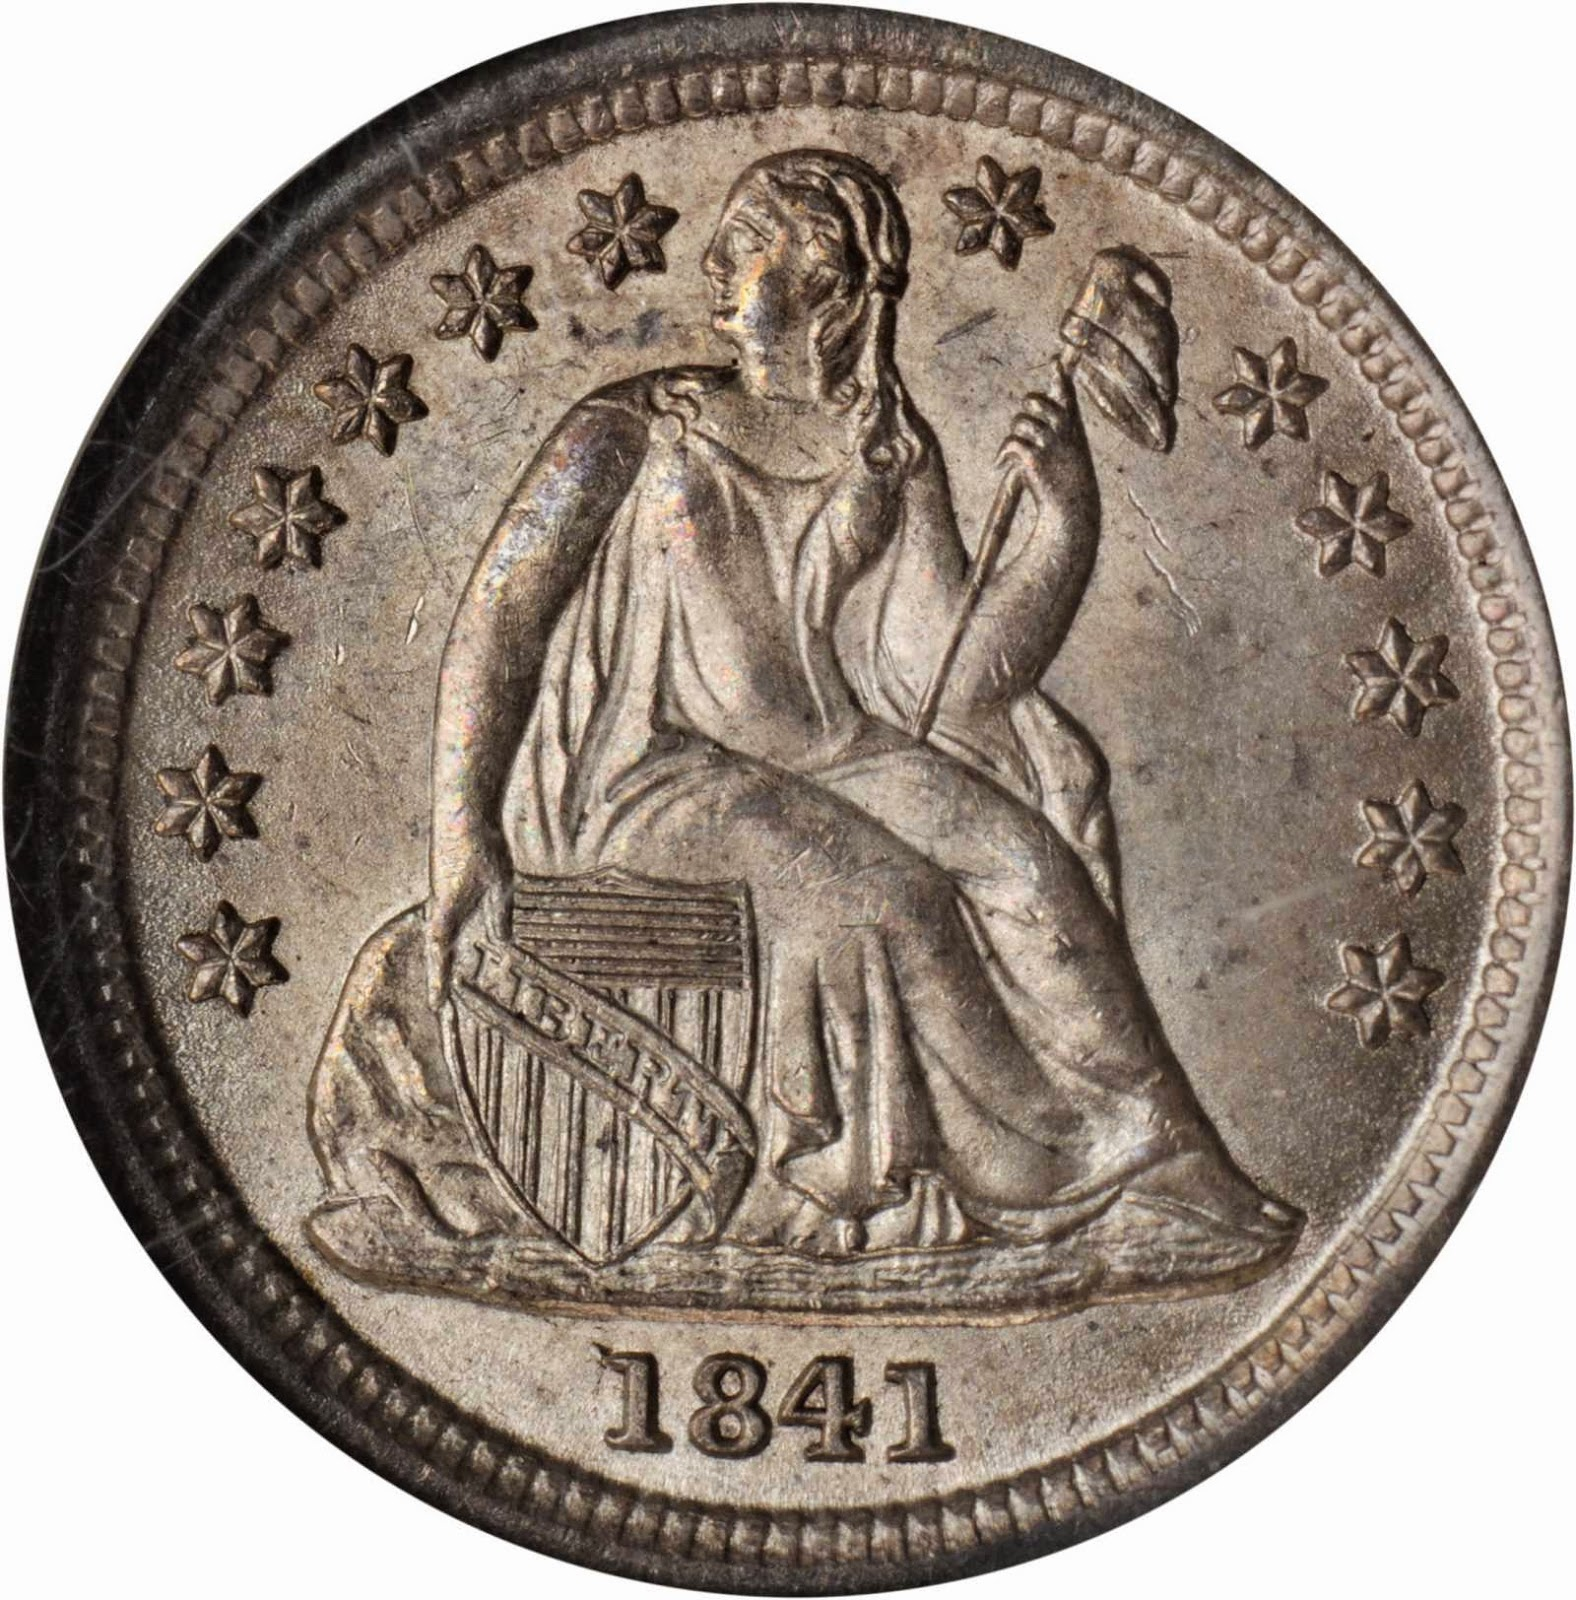 US Coins 1841 Seated Liberty Dime with Stars